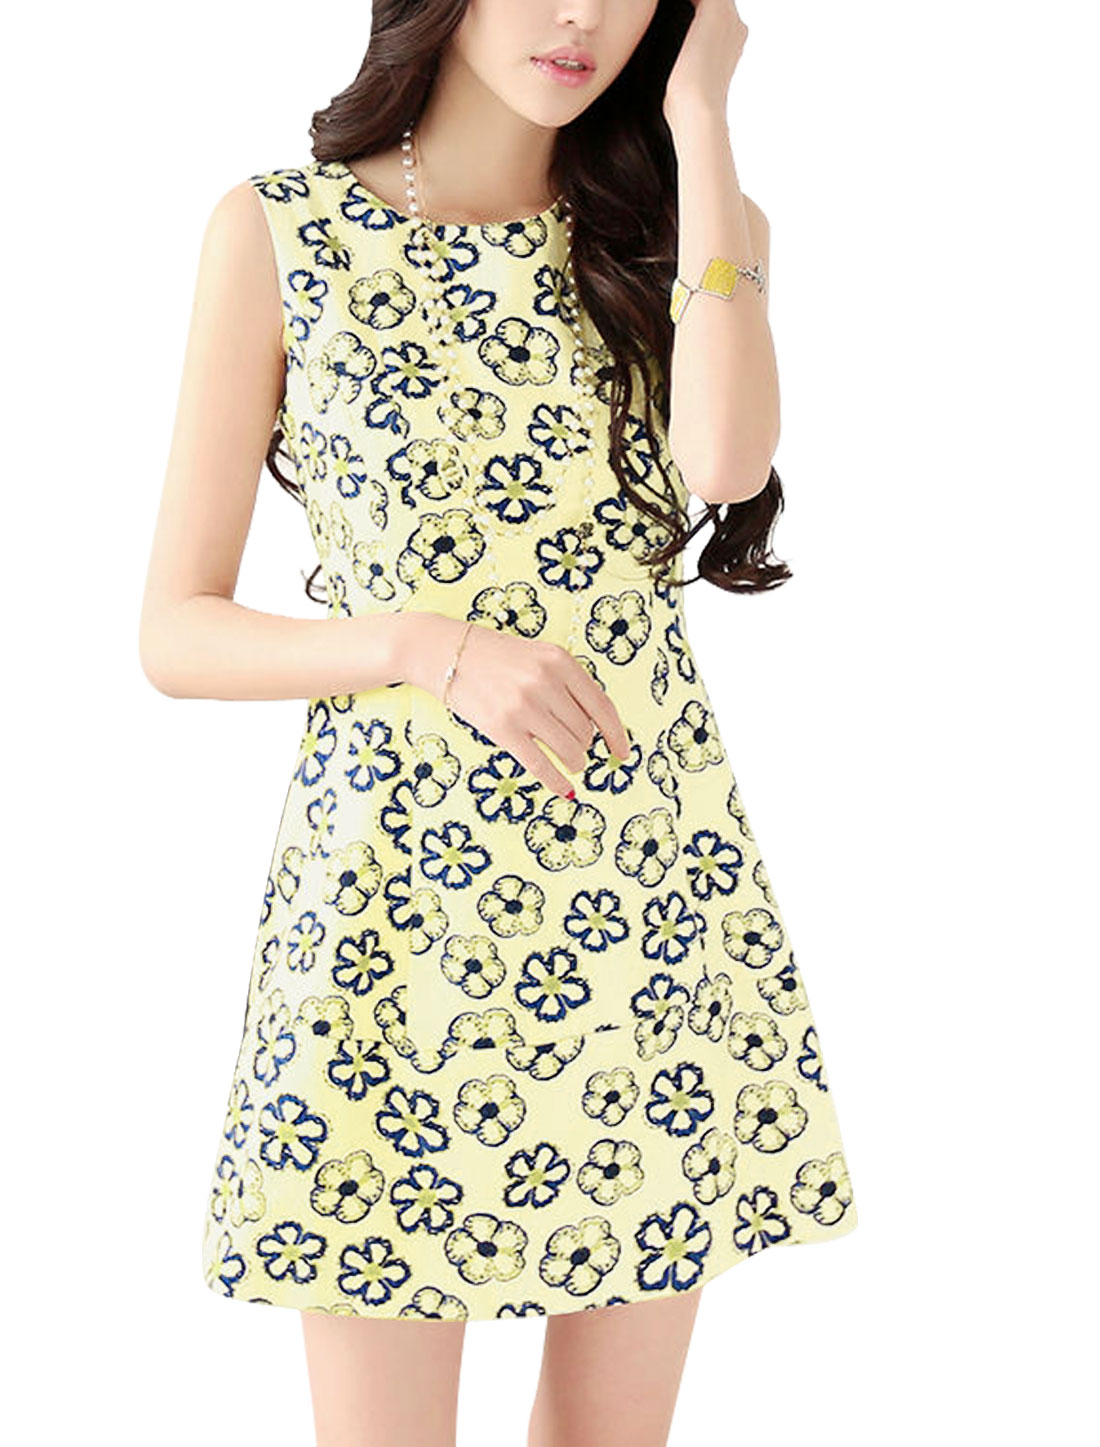 Lady Sleeveless Floral Prints Concealed Zipper Back Lining Dress Beige L